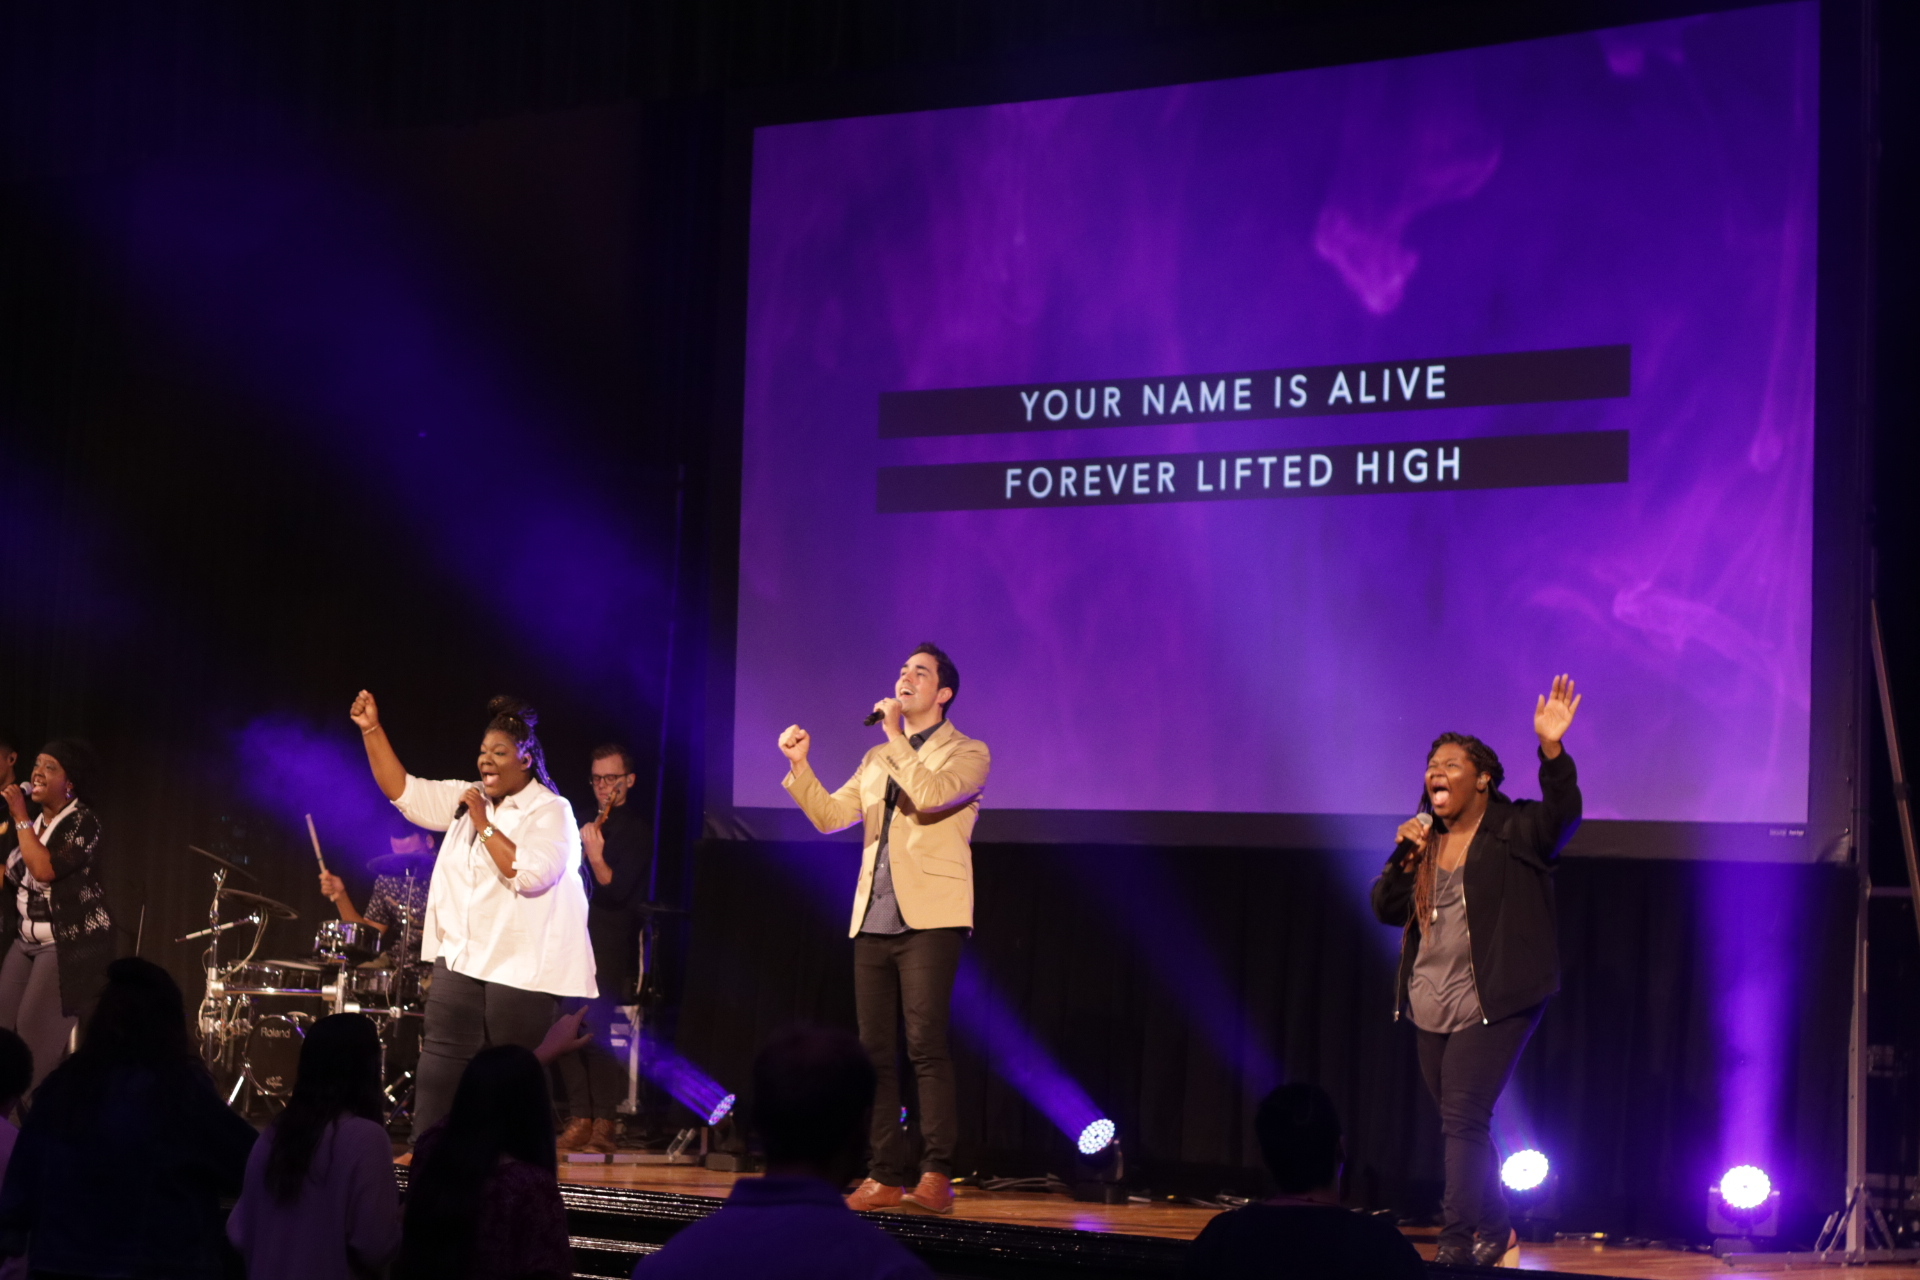 Church of the Highlands: Woodlawn Campus